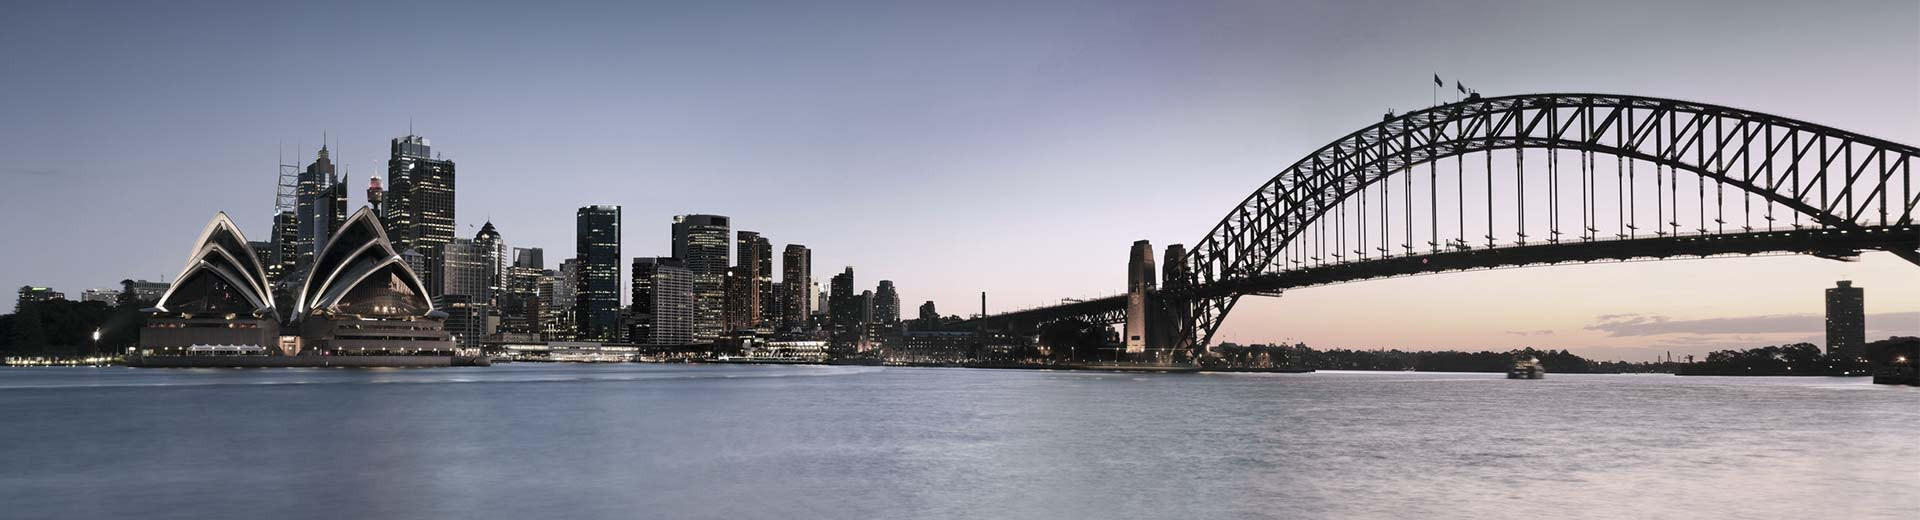 The famous Sydney Opera House dominates this scene, with multiple buildings and the Sydney Bridge on the right hand side